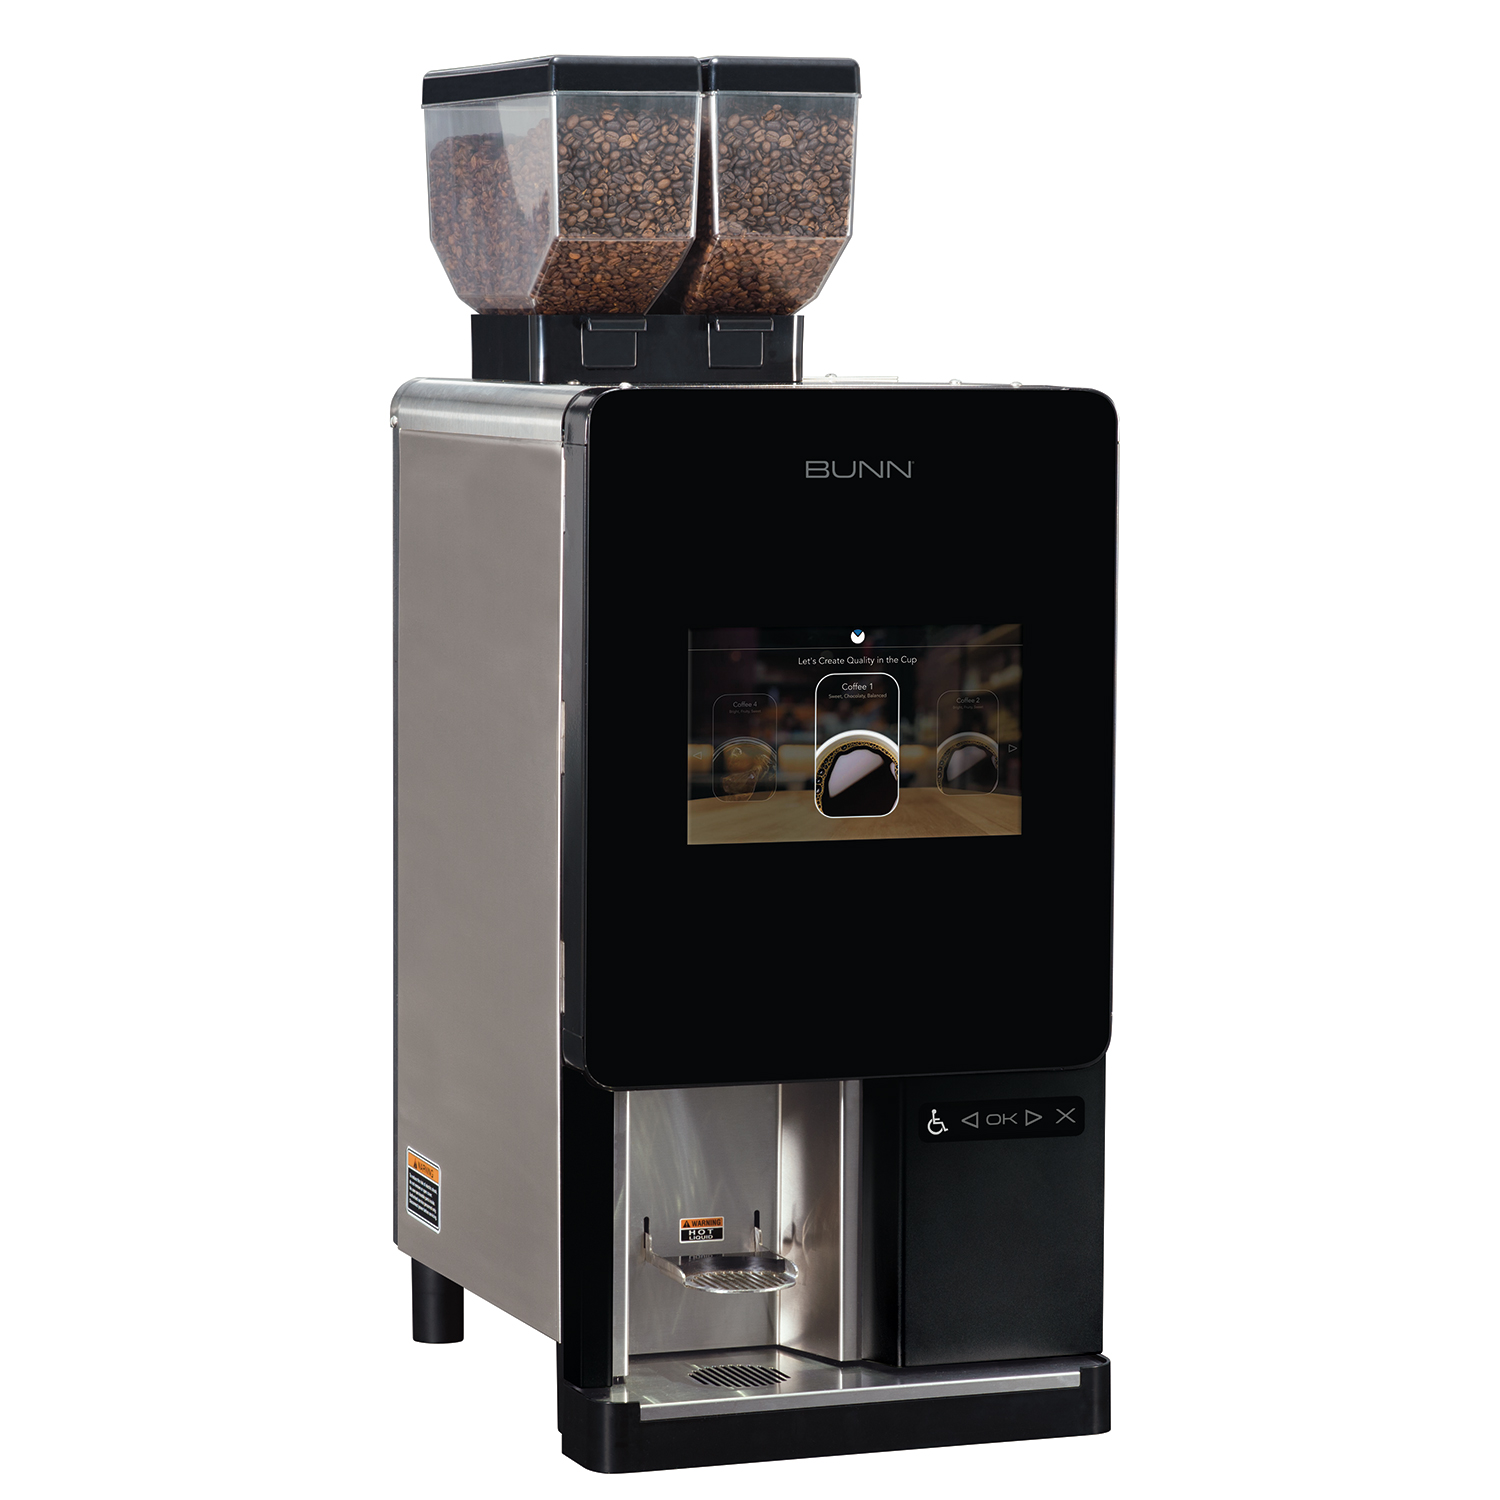 BUNN 44400.0103 coffee brewer, for single cup